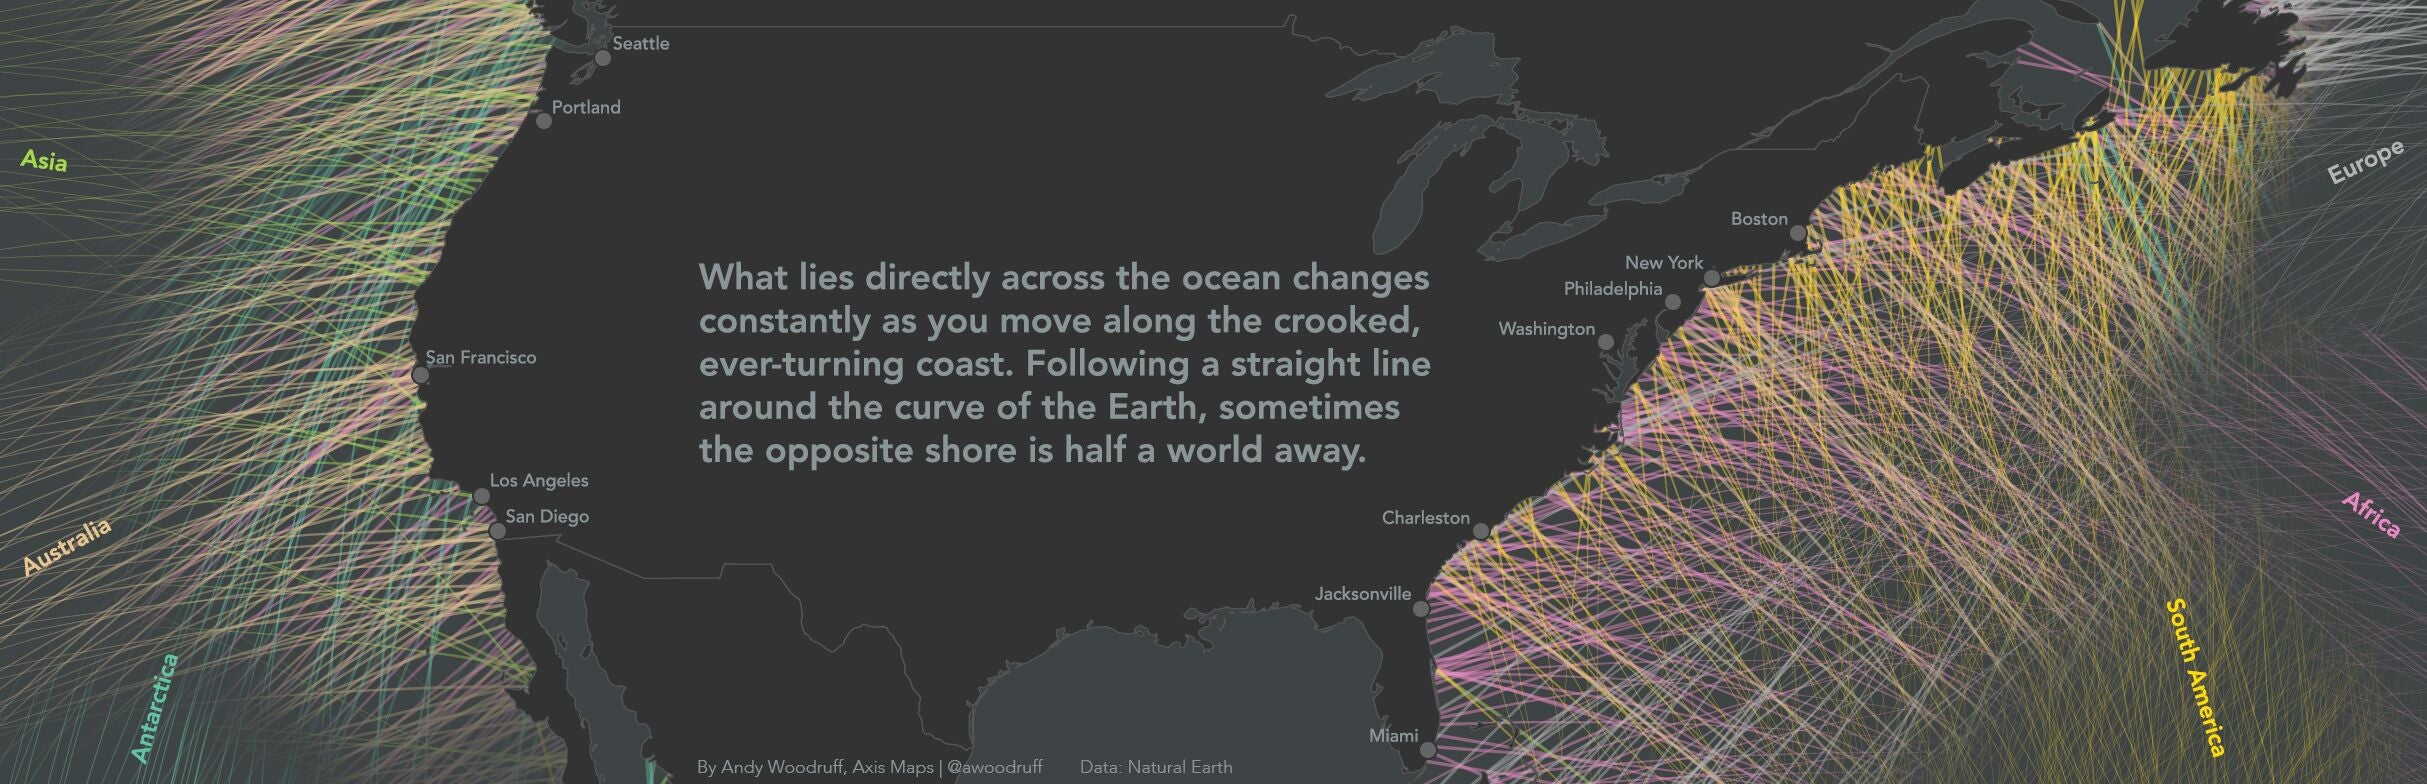 Views across ocean from United States via Andy Woodruff